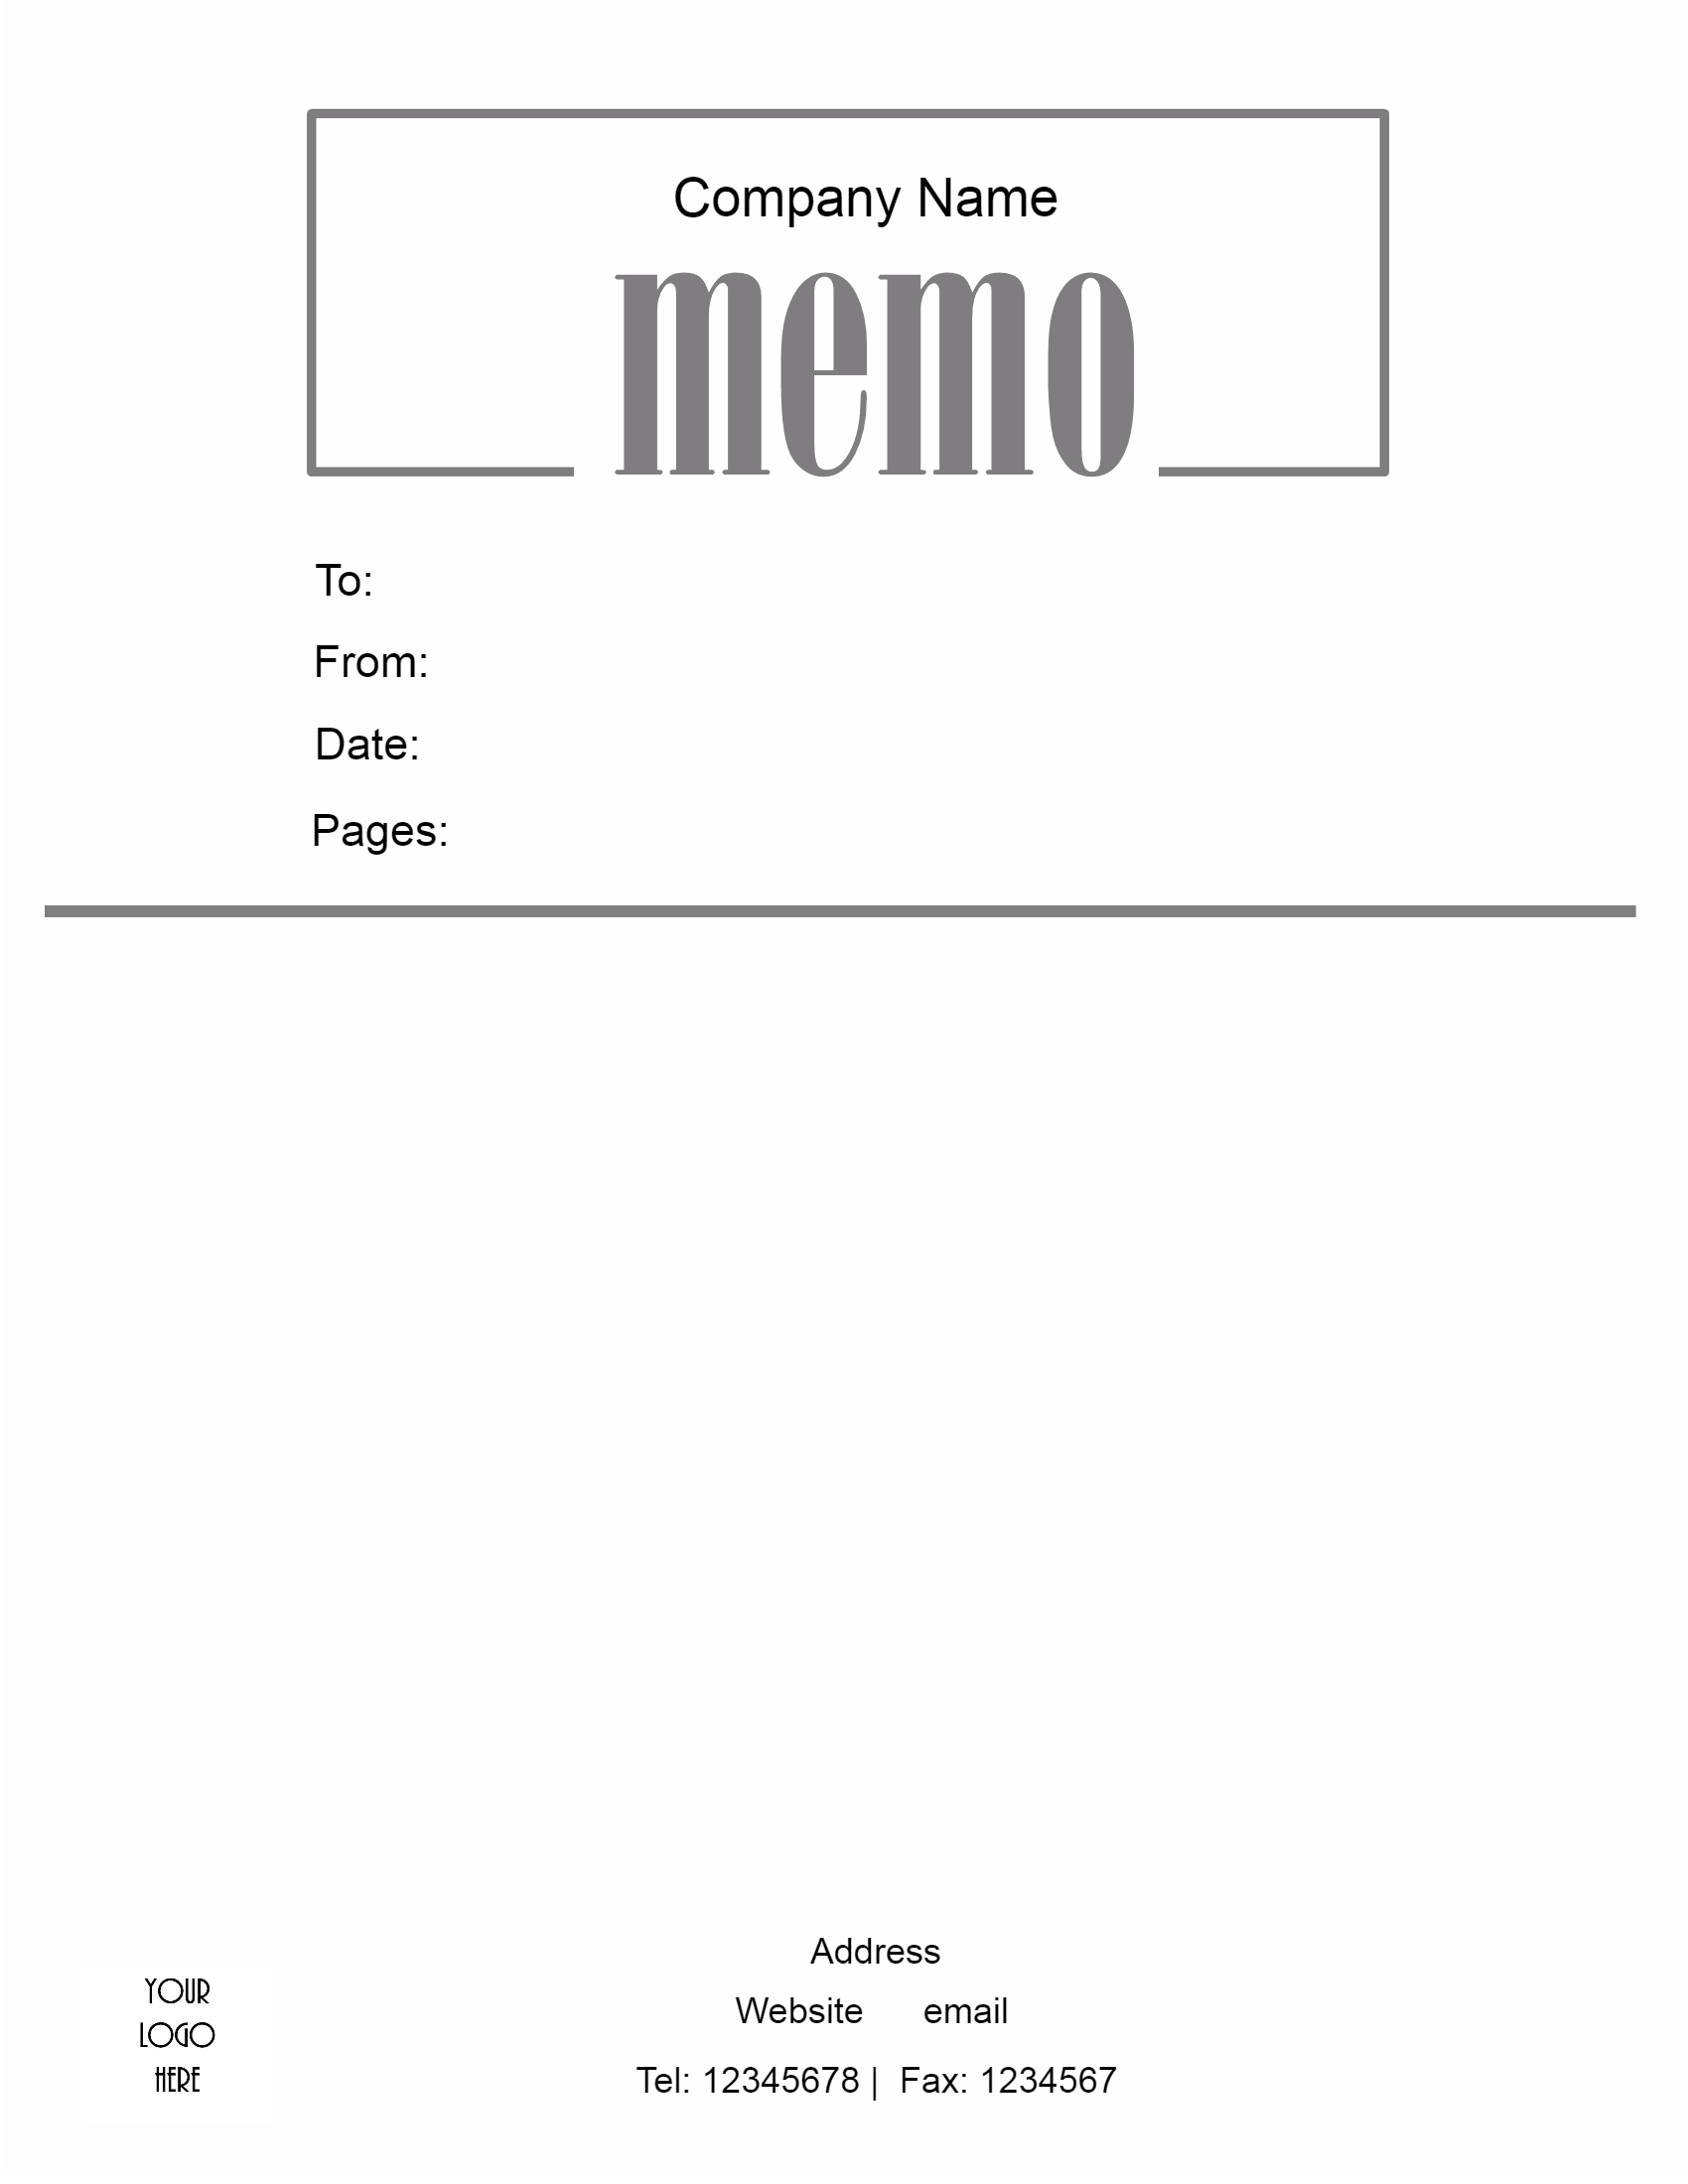 microsoft word memo template company logo at the bottom